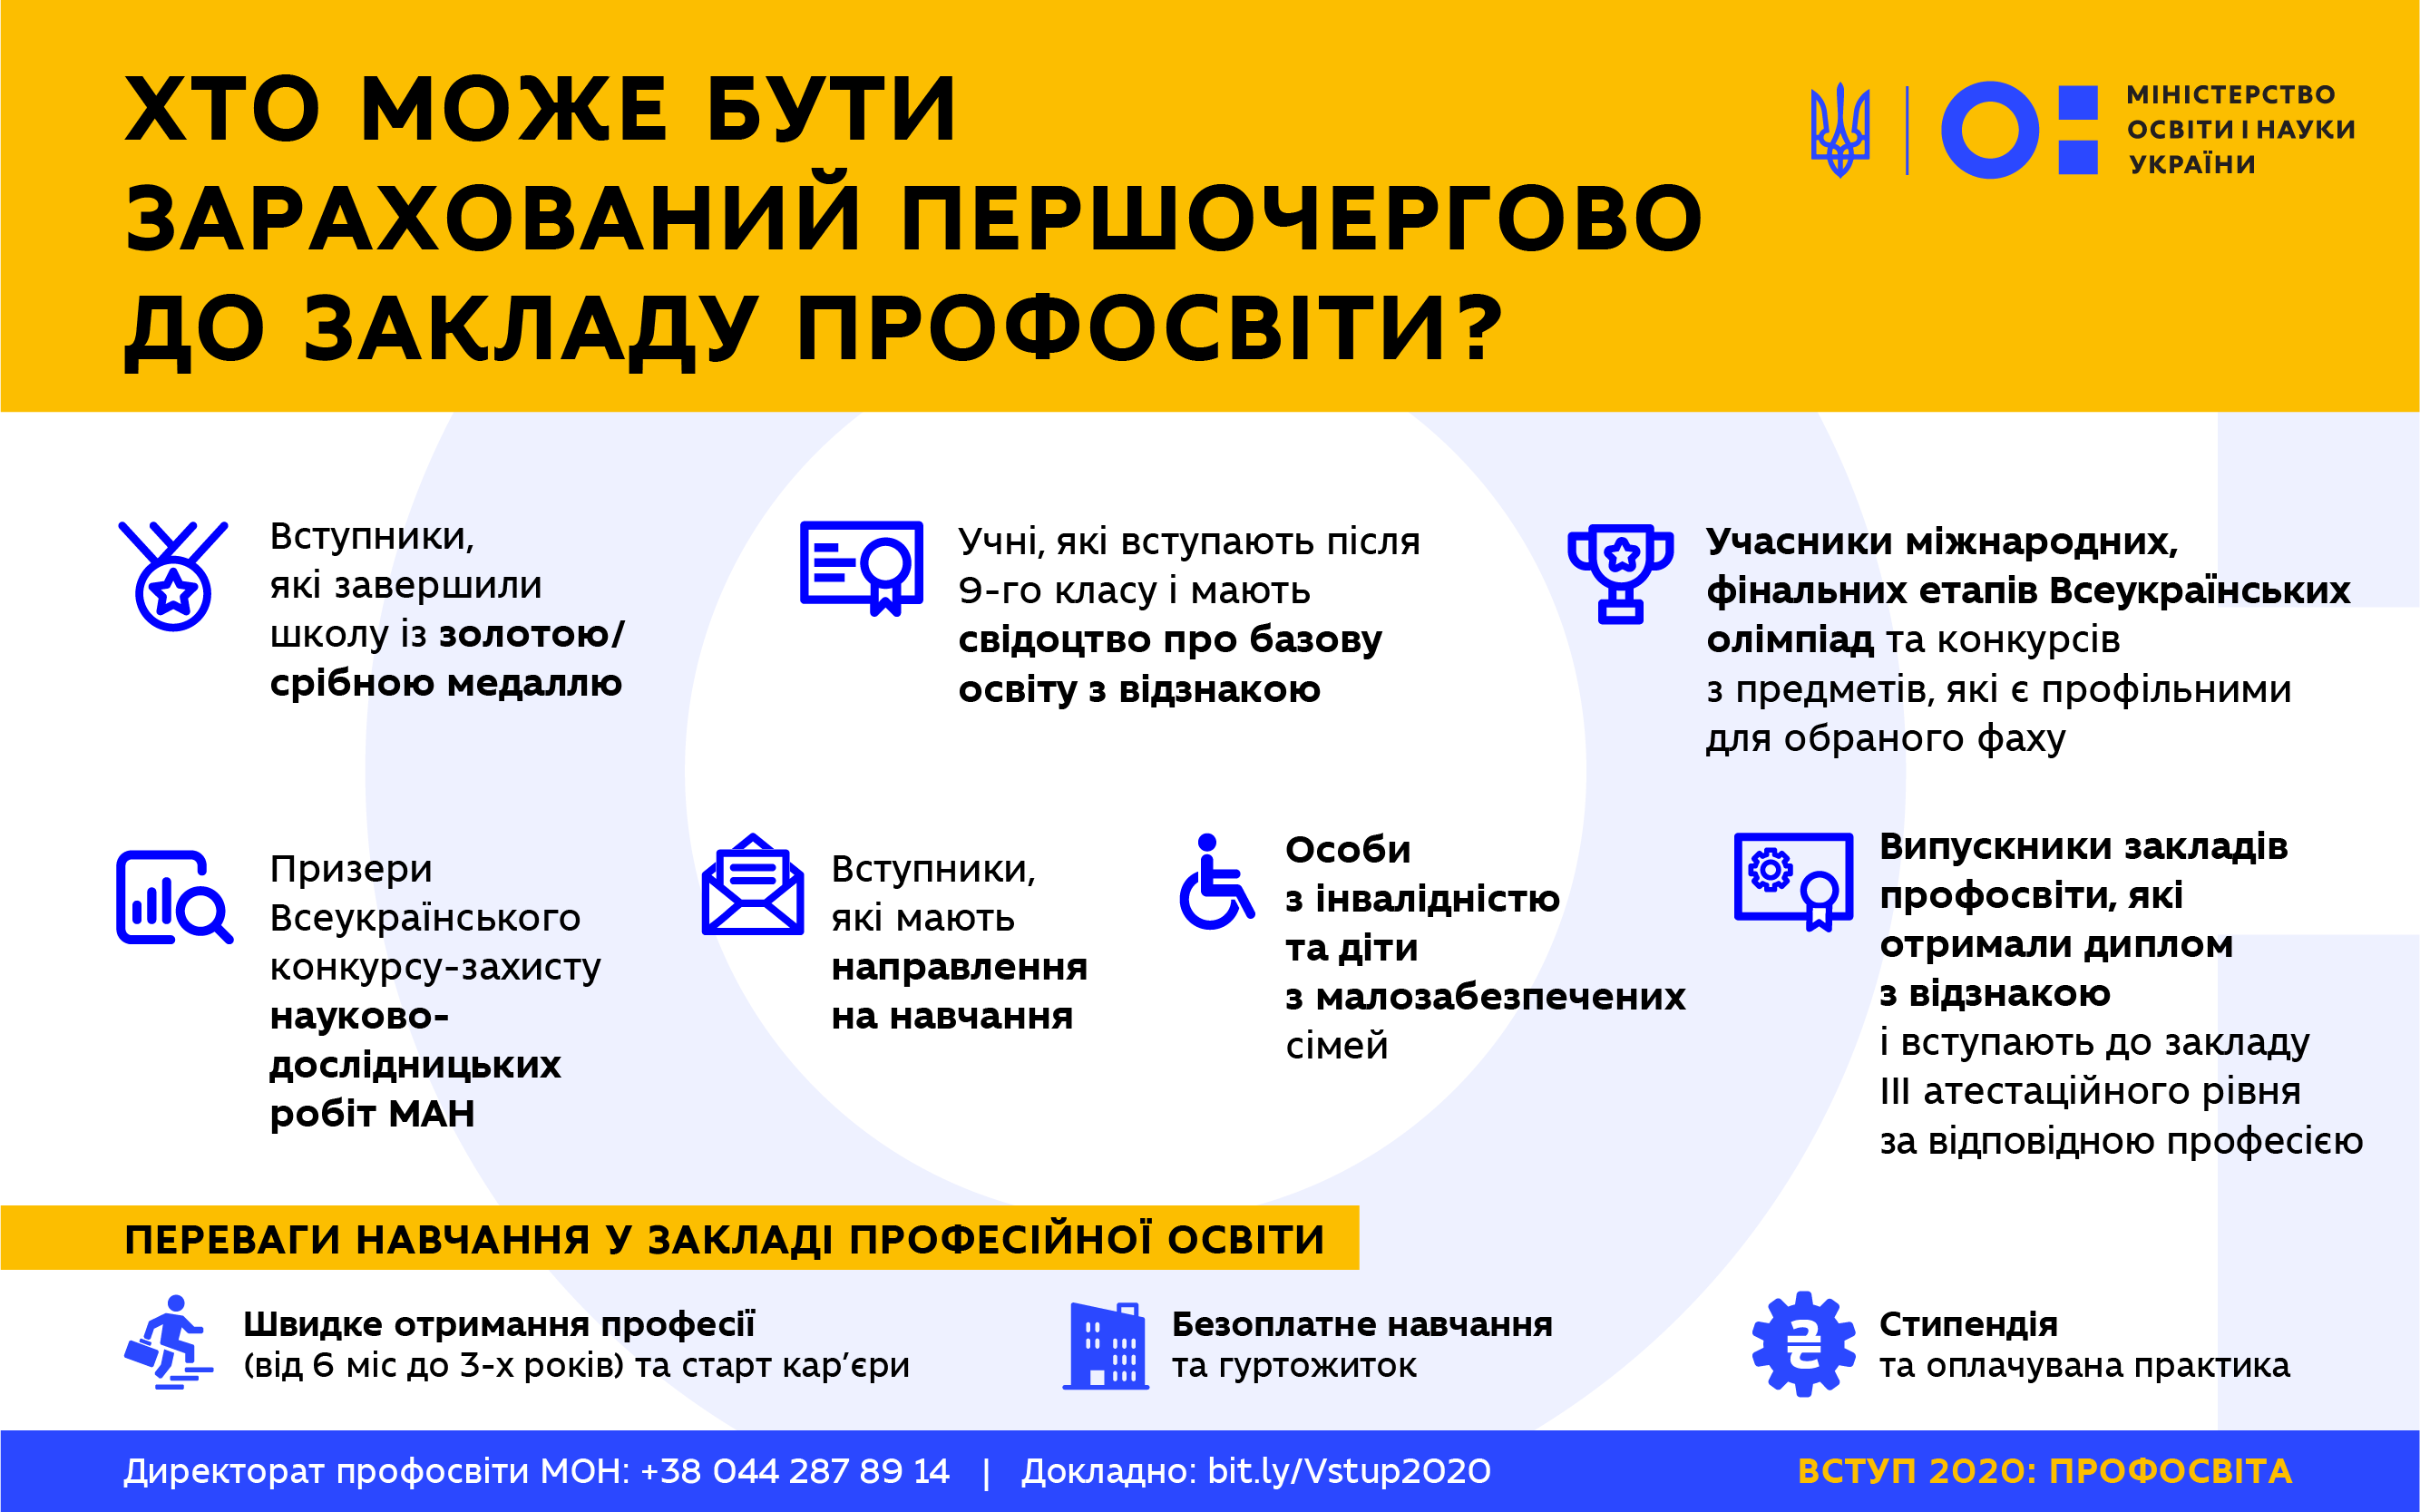 C:\Documents and Settings\User\Рабочий стол\infographics_prof_tech_explaining-03.png